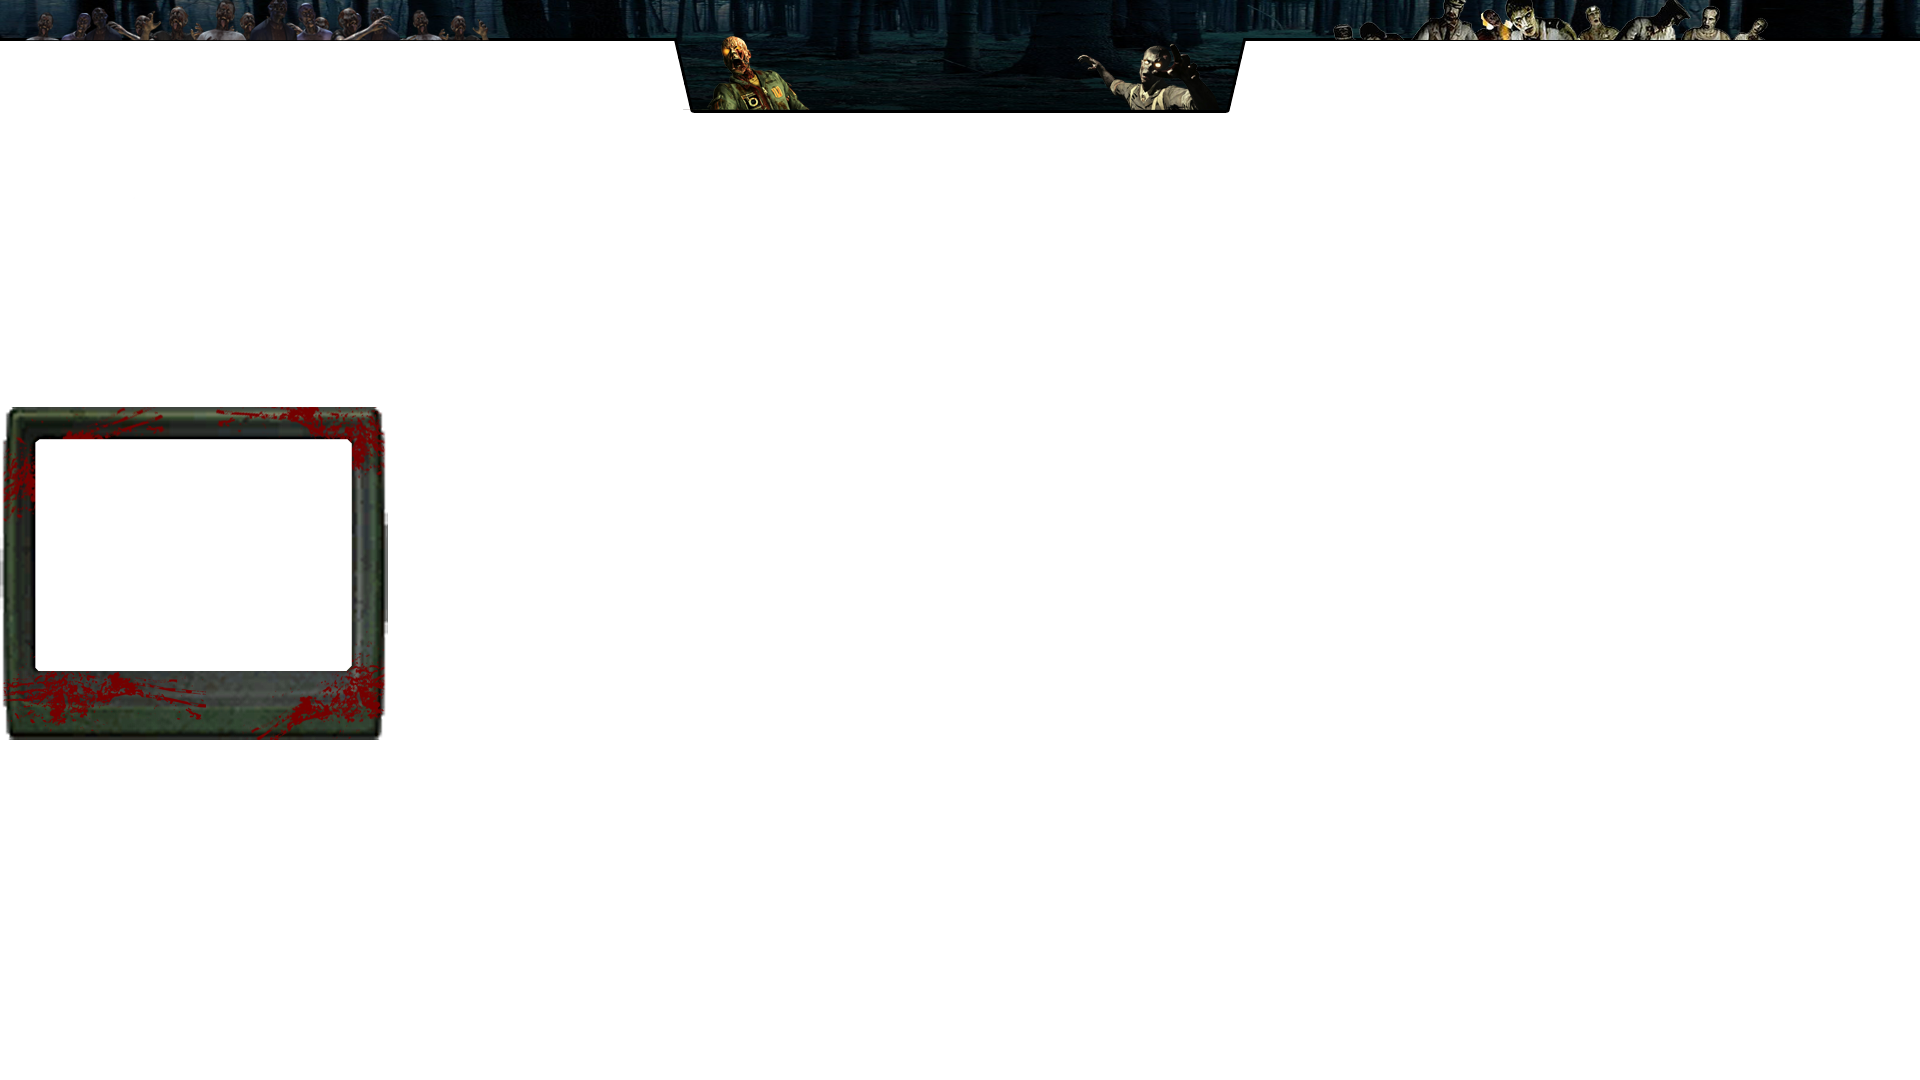 Zombie twitch overlay by KaffeMLG on DeviantArt